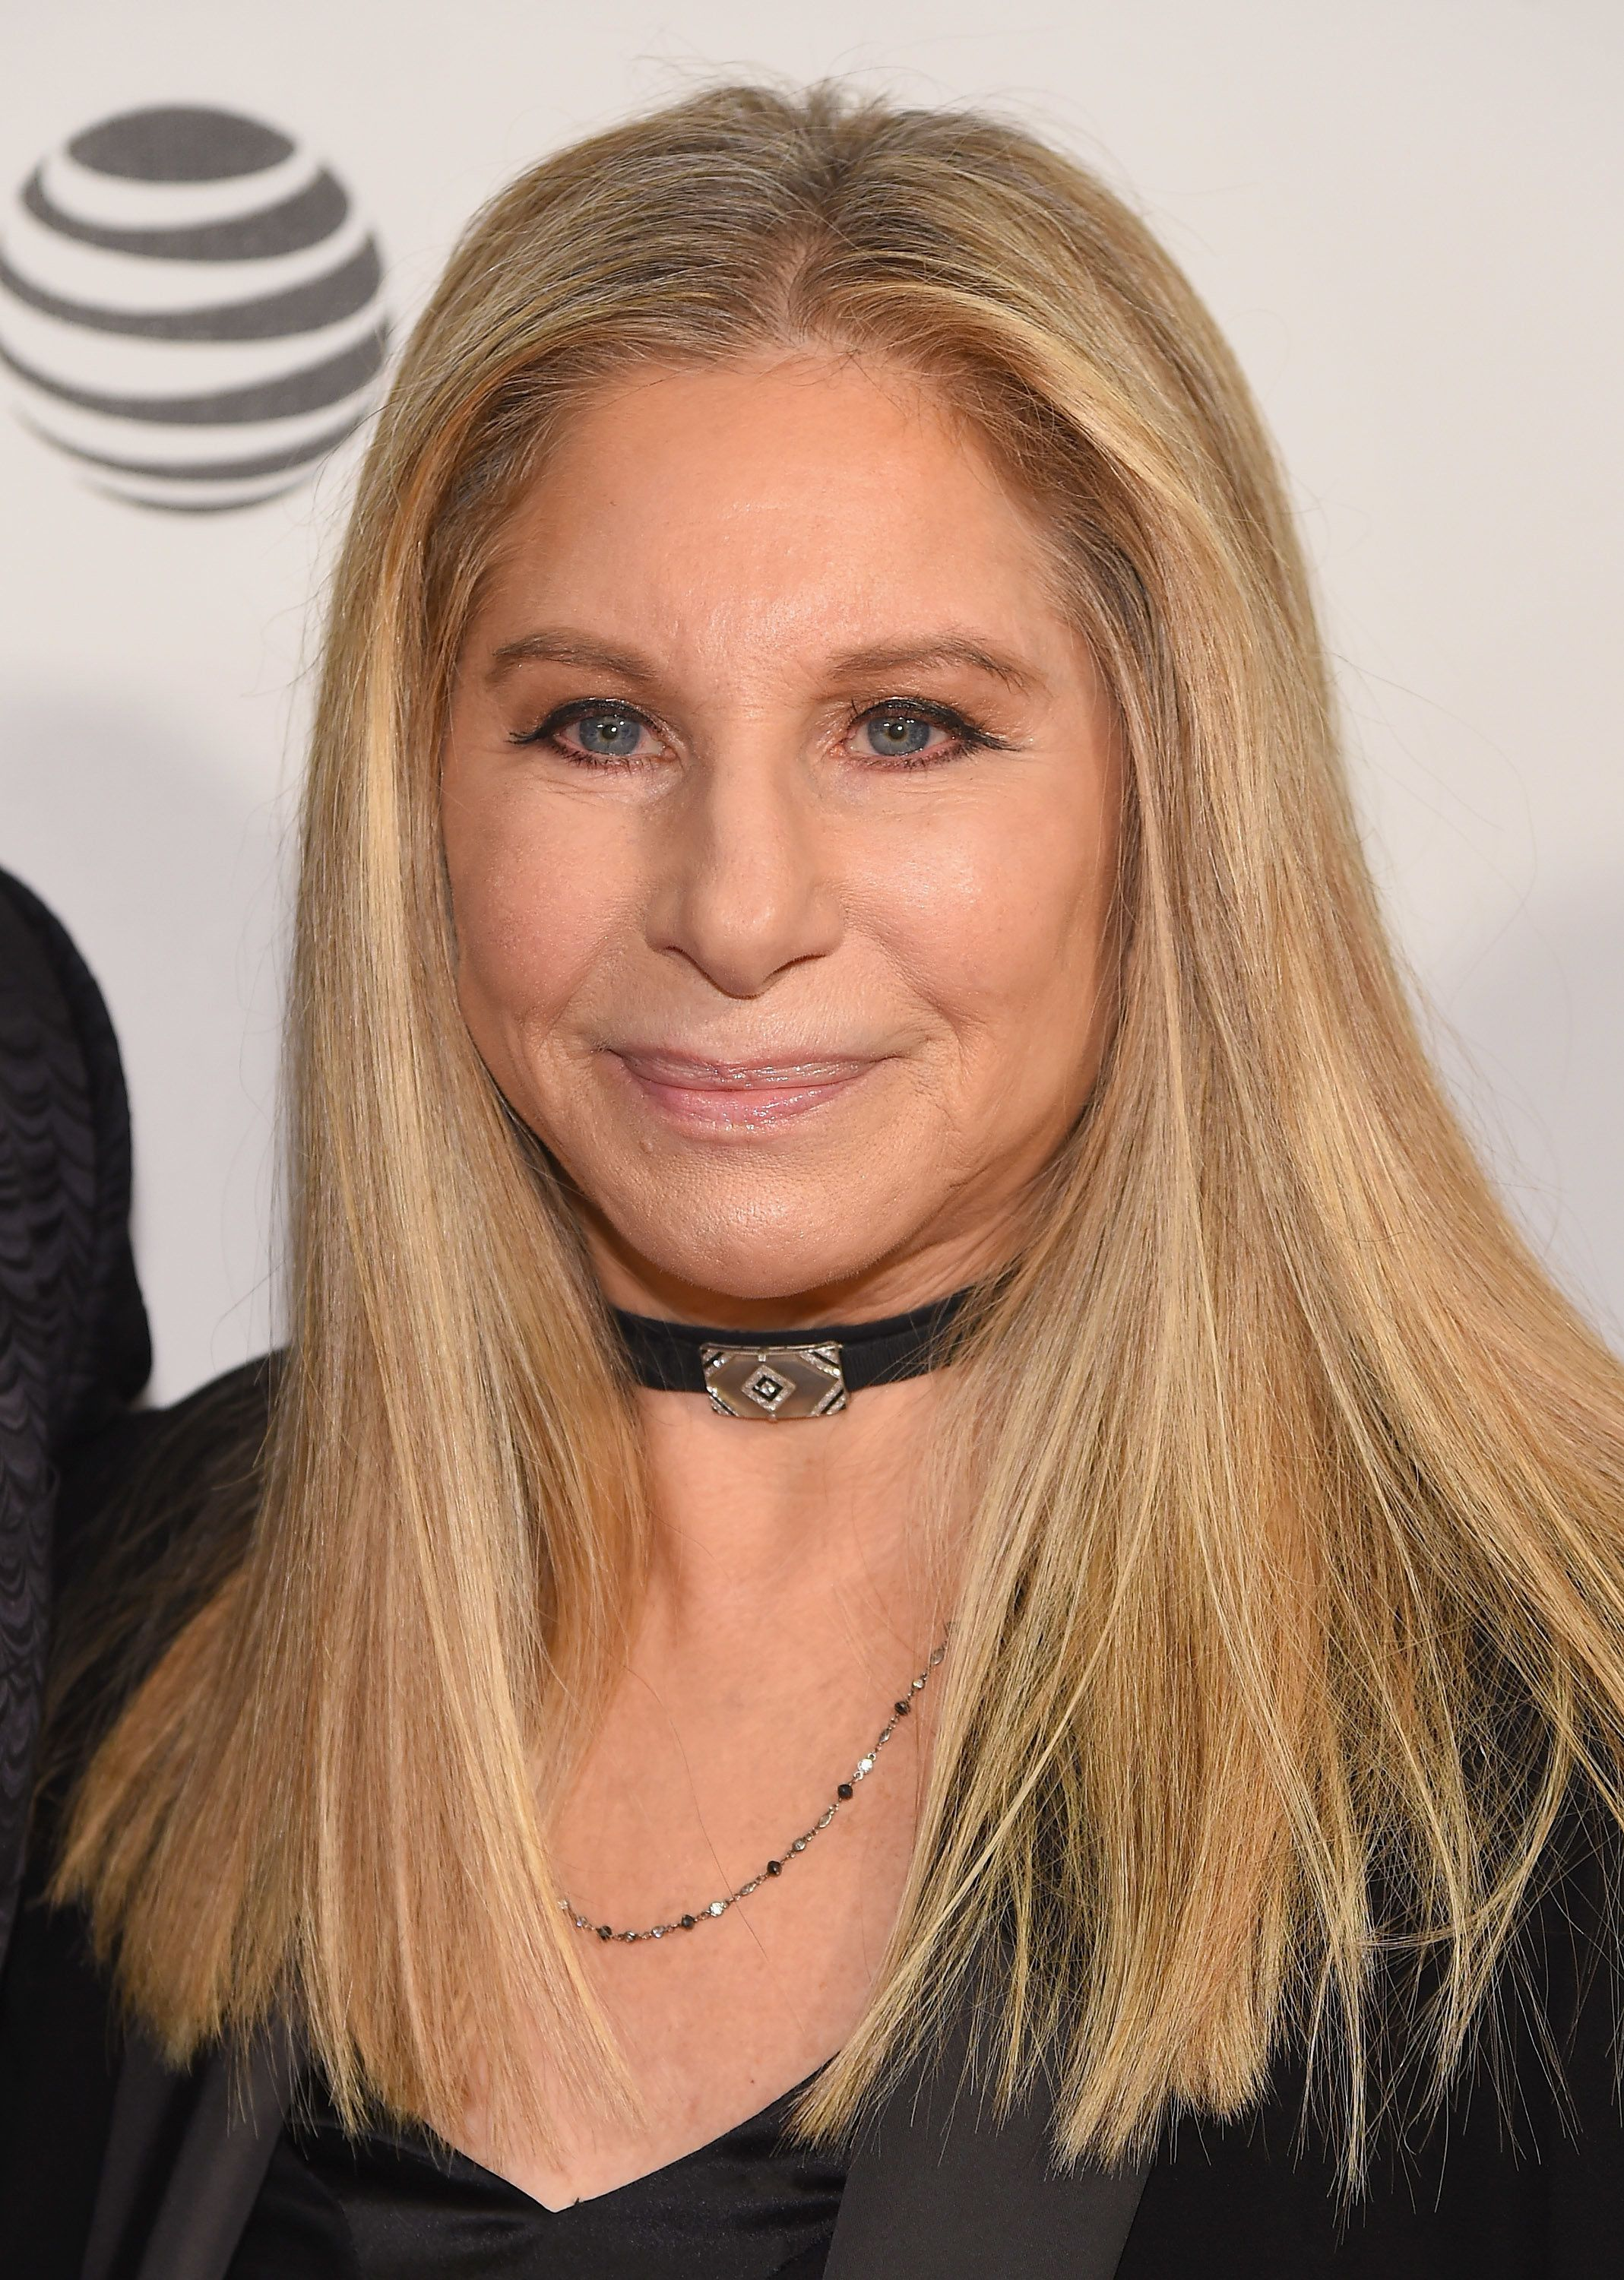 NEW YORK, NY - APRIL 29:  Barbara Streisand attends Tribeca Talks: Storytellers: Barbra Streisand with Robert Rodriguez during the 2017 Tribeca Film Festival at BMCC Tribeca PAC on April 29, 2017 in New York City.  (Photo by Gary Gershoff/WireImage)